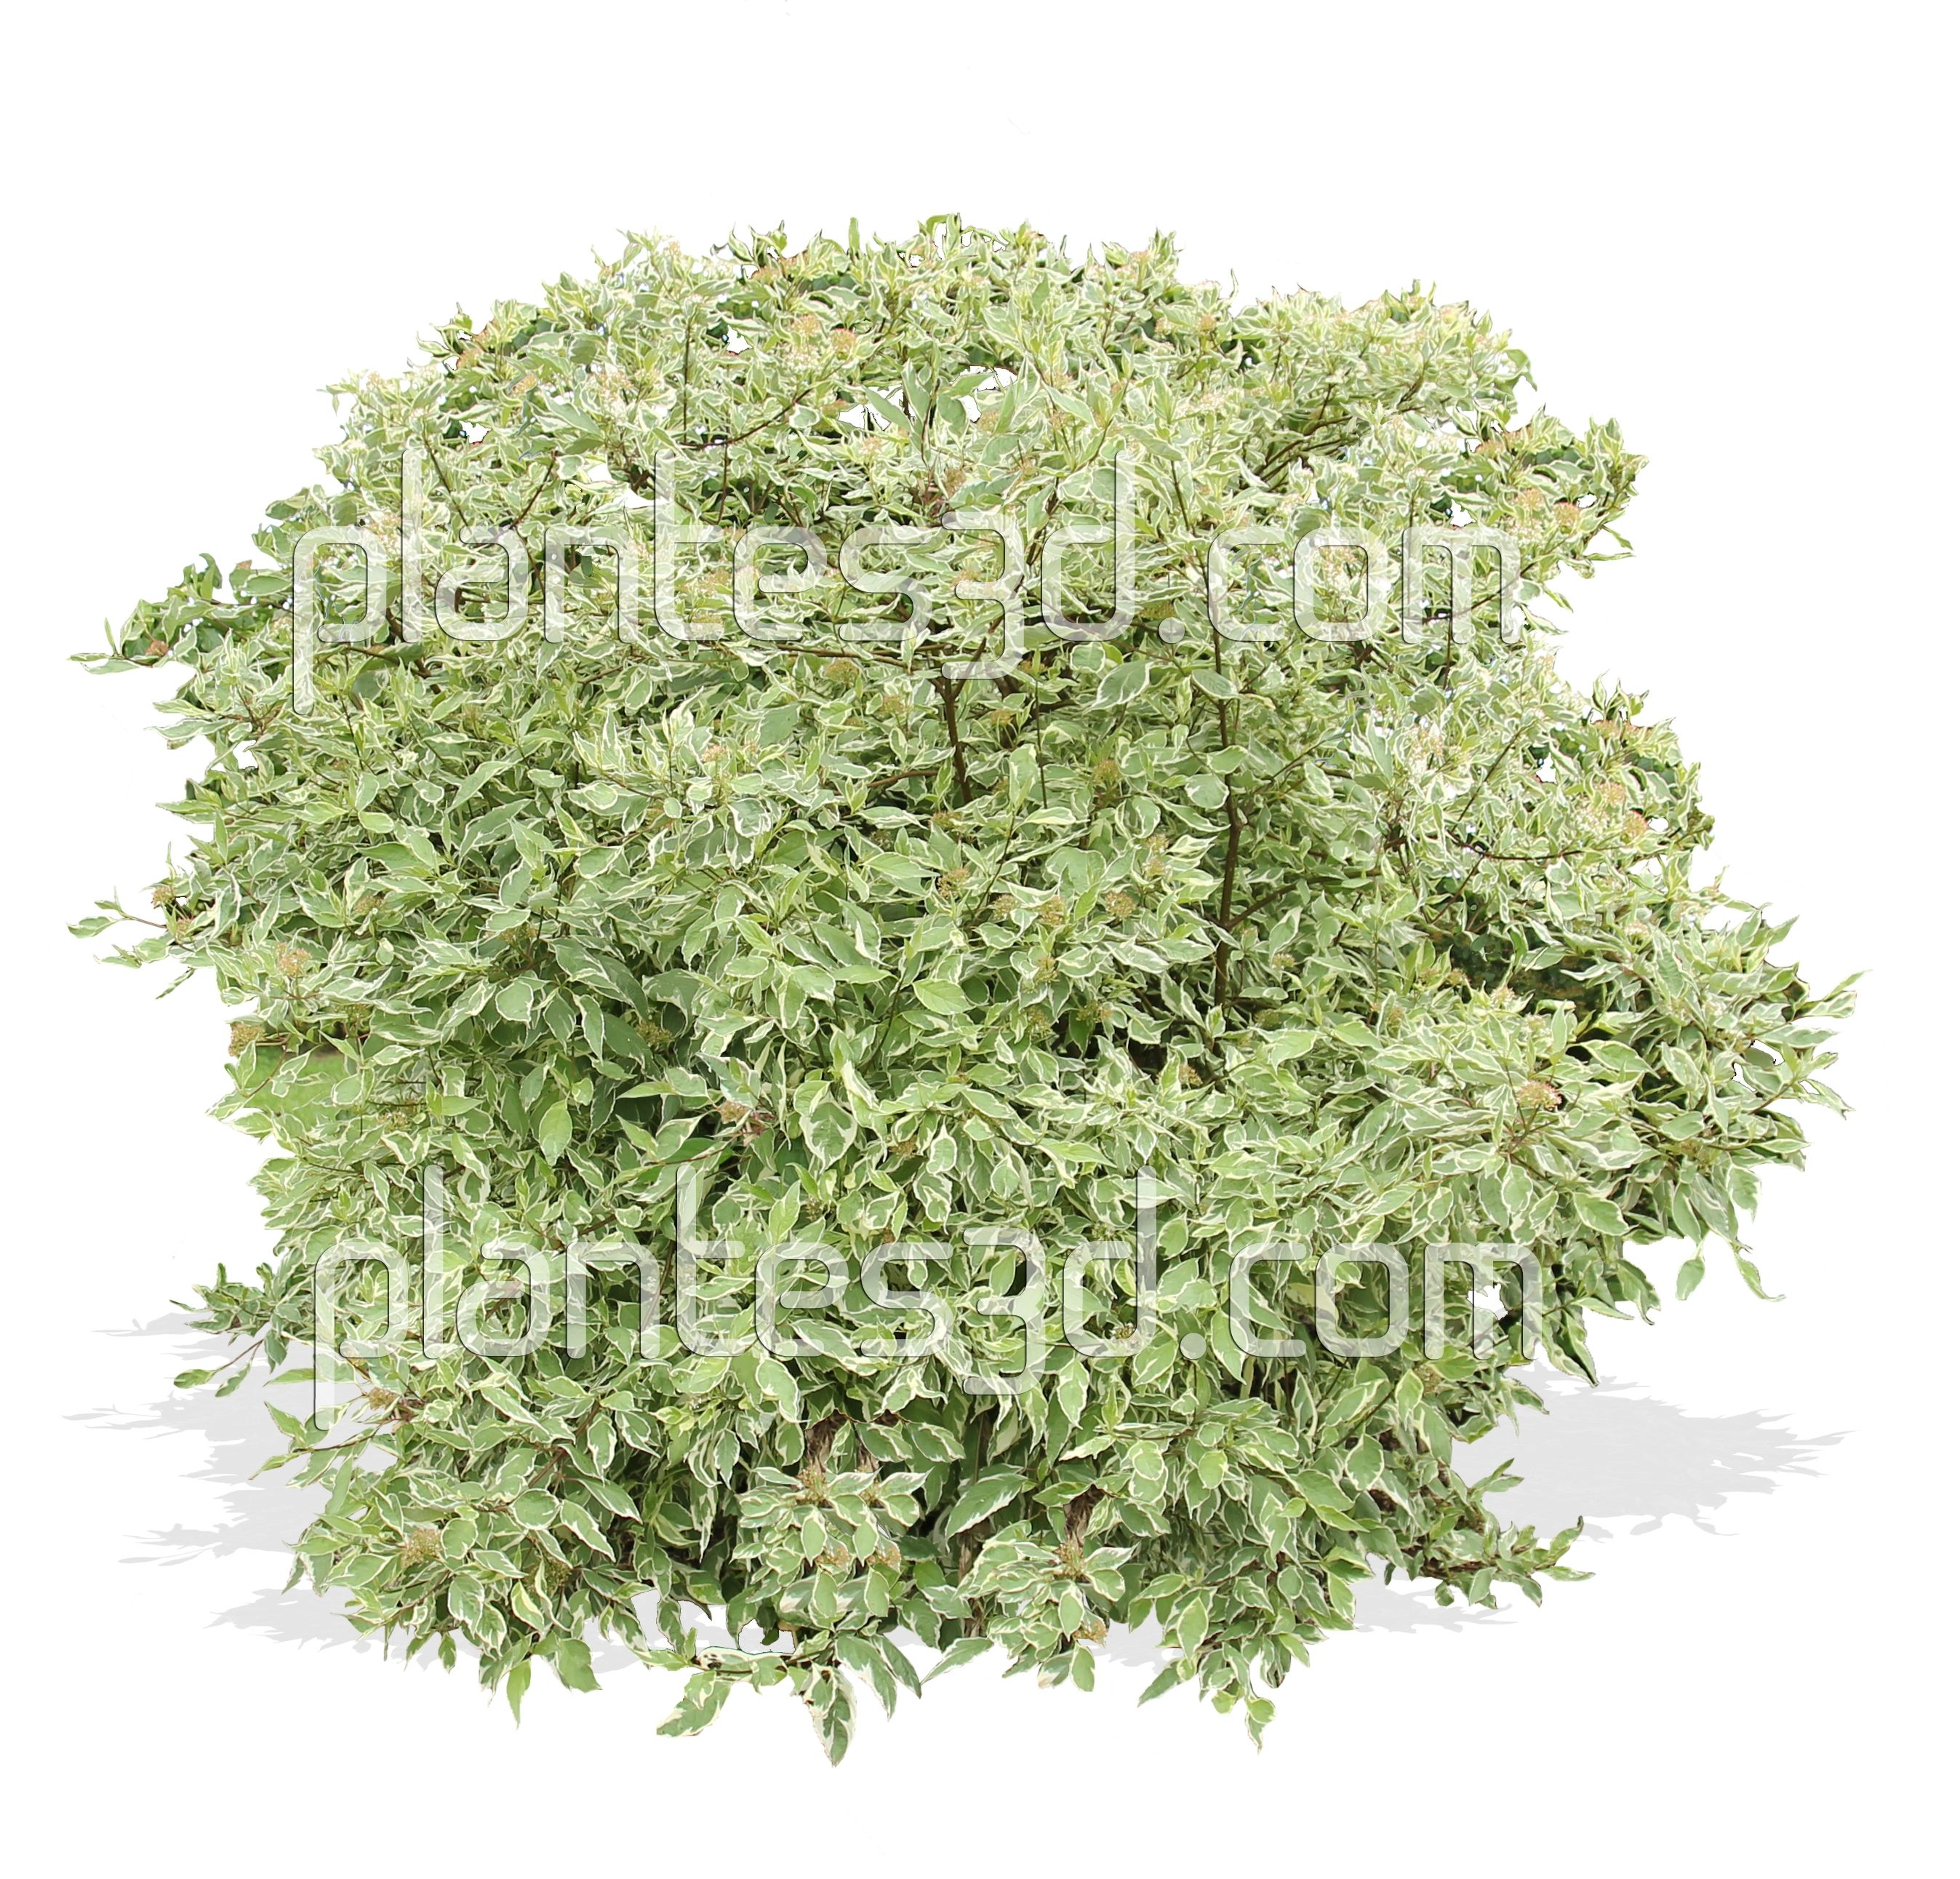 Top view plants 02 2d plant entourage for architecture - Cornus Alba Arbuste Cornouiller Png Shrub Cornus Cutout